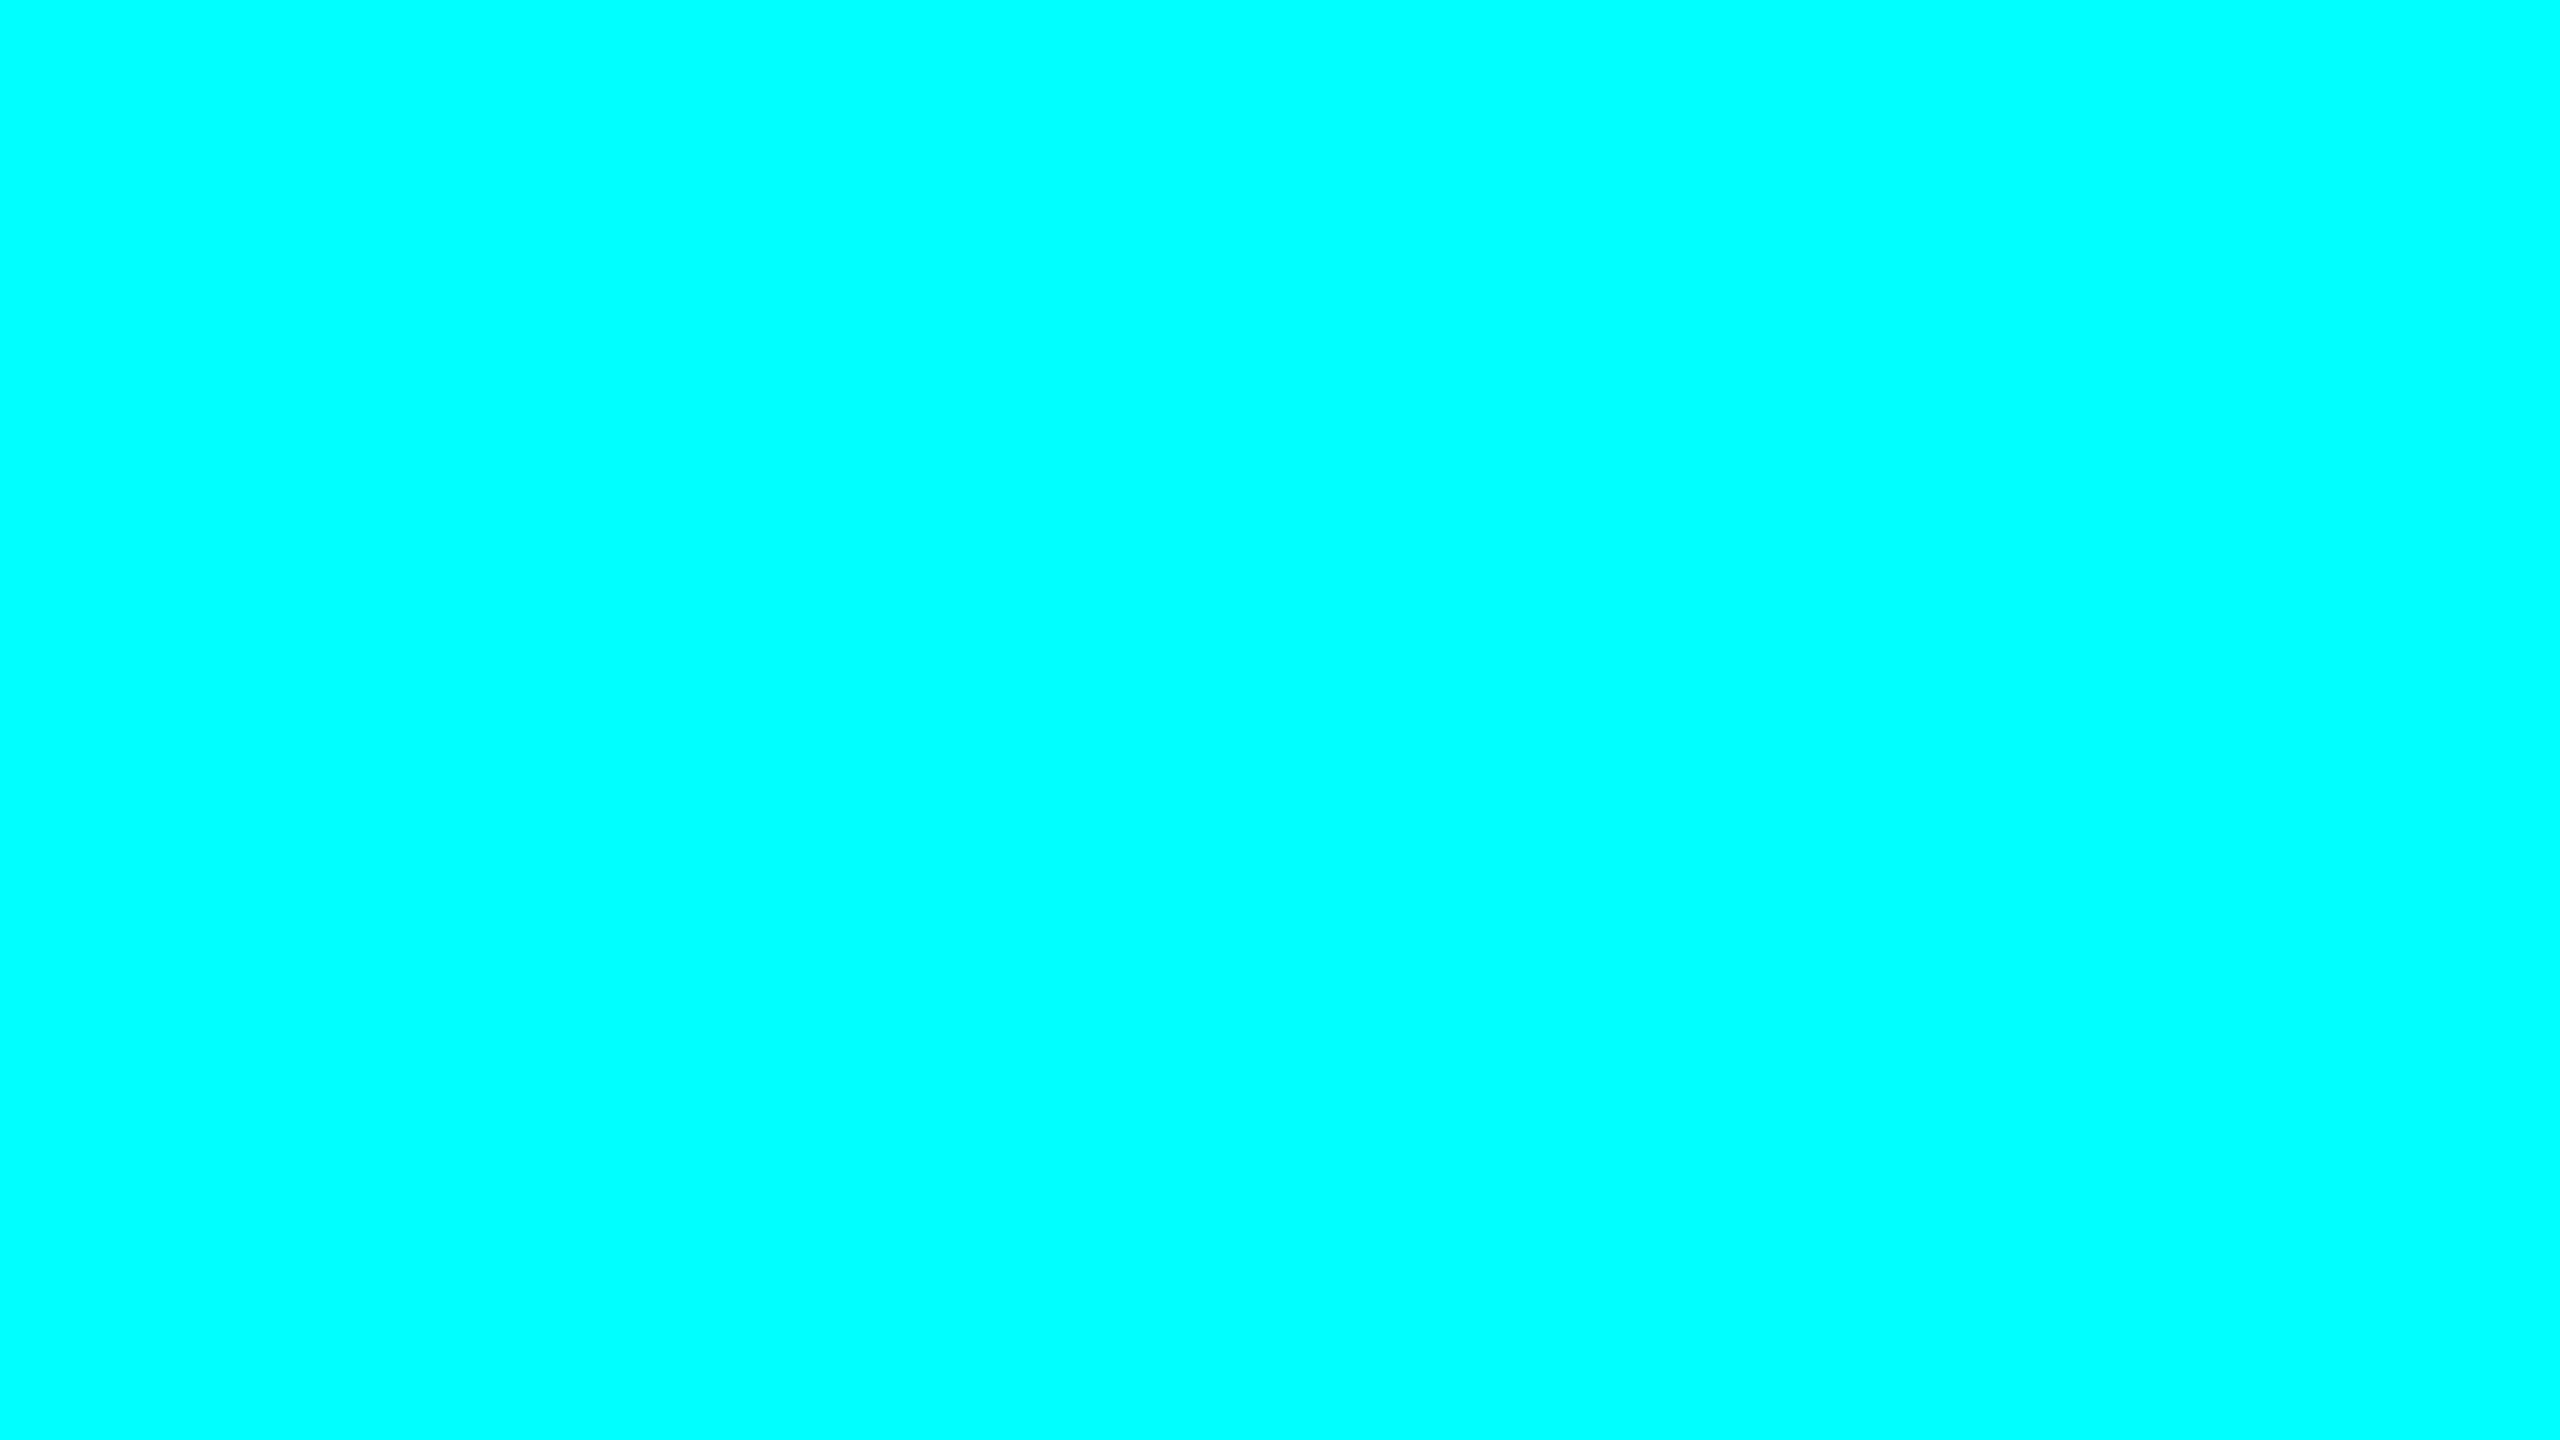 this Cyan Desktop Wallpaper is easy Just save the wallpaper 2560x1440